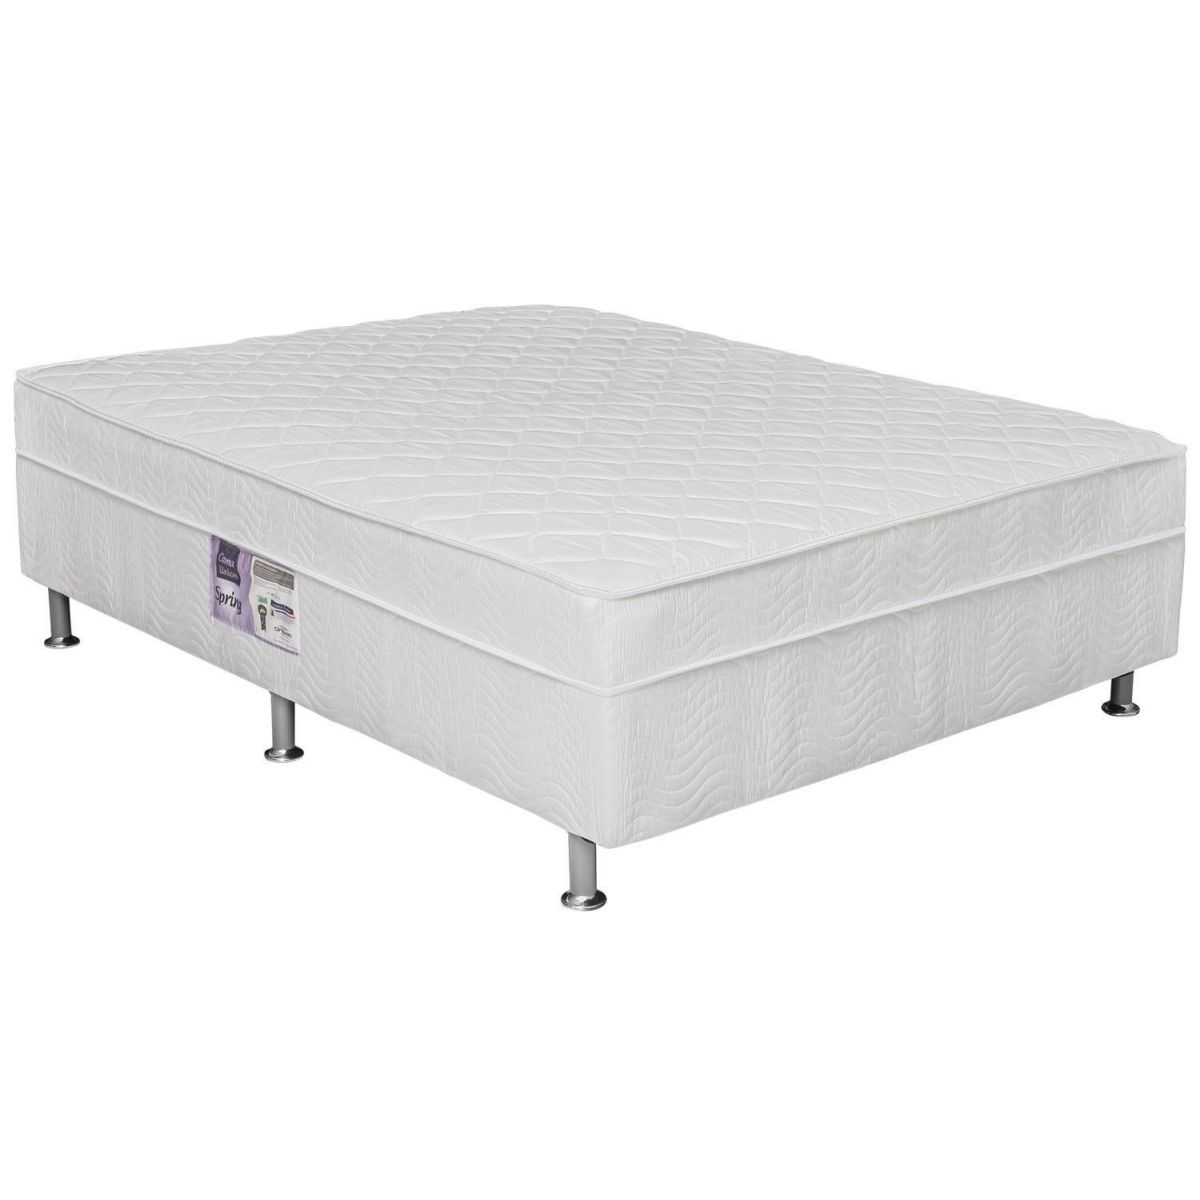 CAMA BOX QUEEN SIZE SIMPLES MOLA BONNEL COM PILLOW-TOP